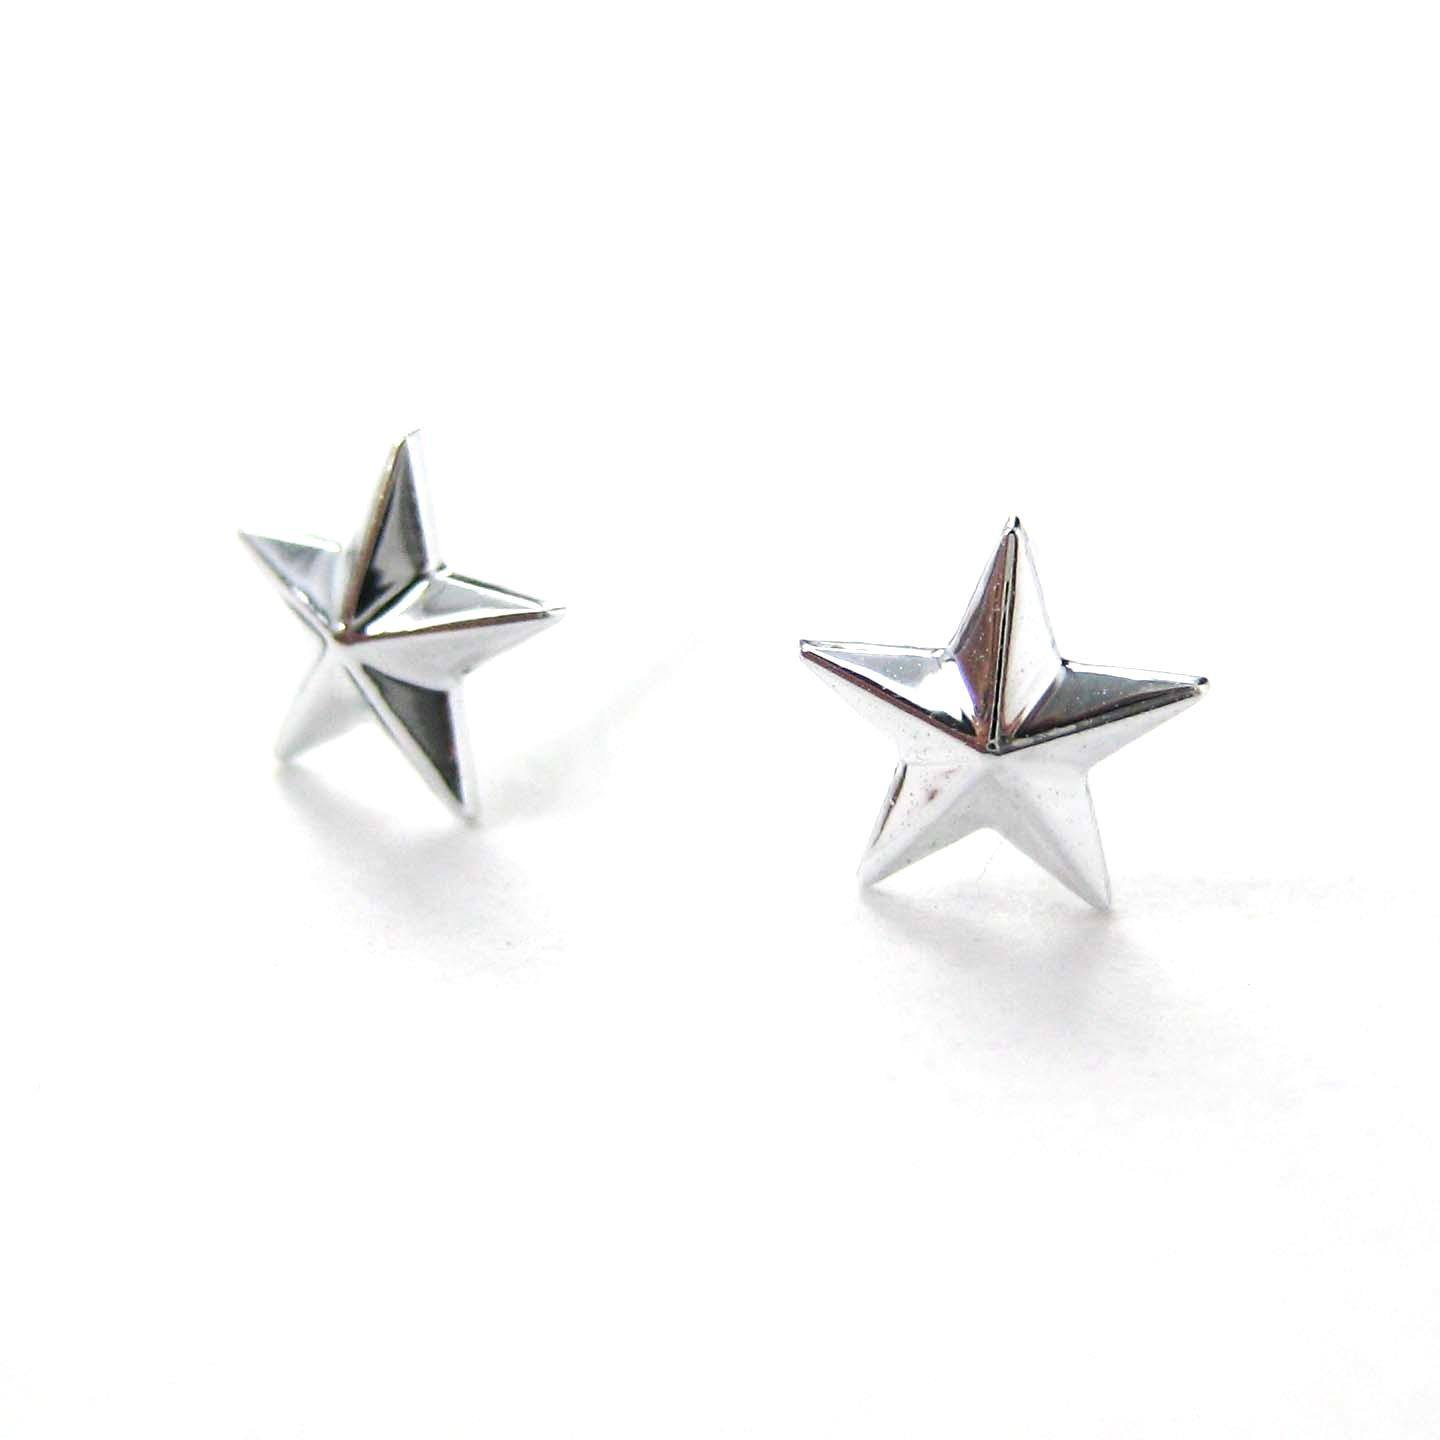 small-simple-star-shaped-stud-earrings-non-allergenic-plastic-post